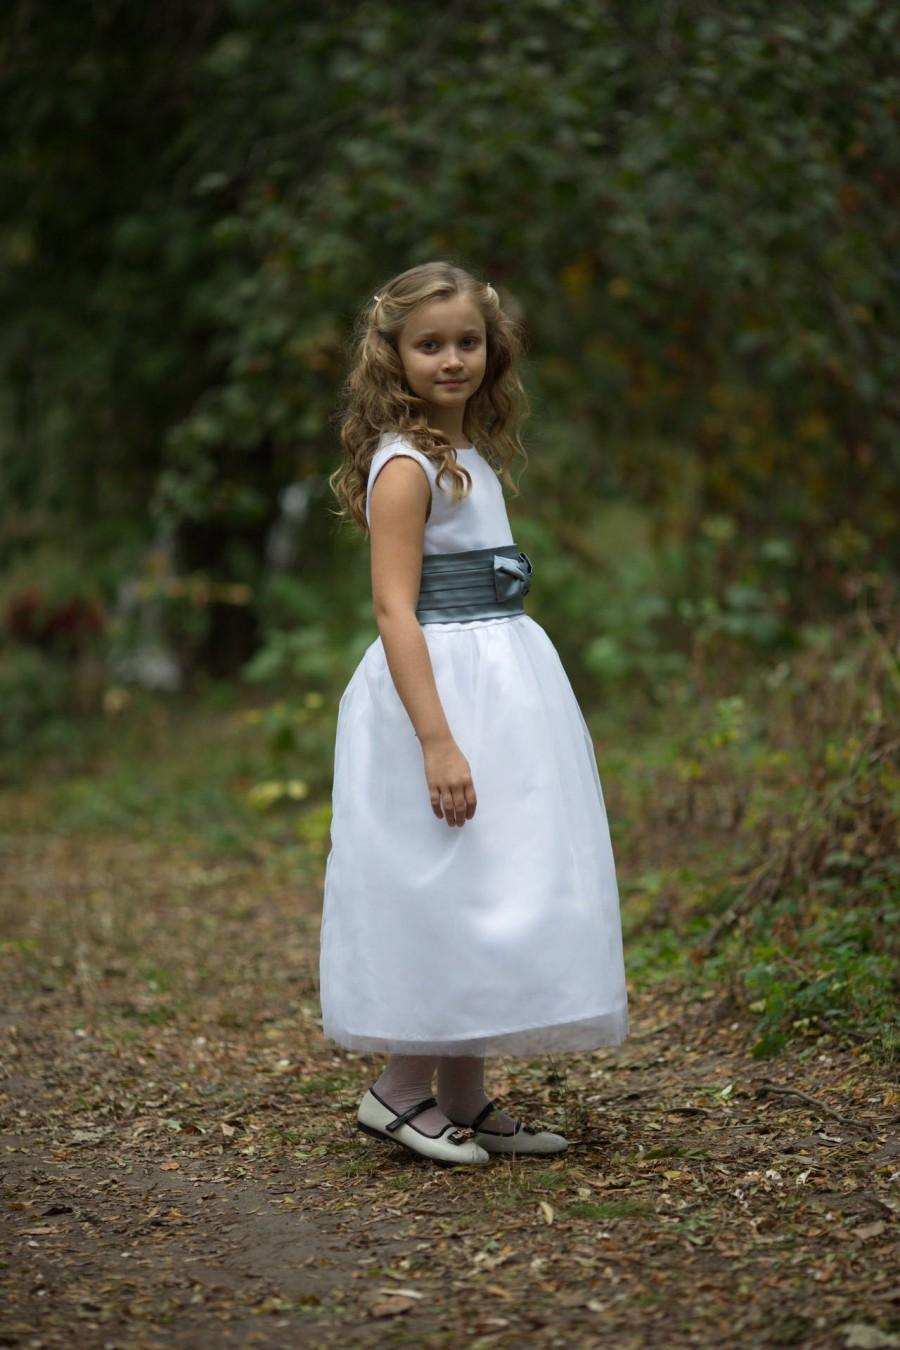 زفاف - Flower girl dress, White girl dress, Country flower girl, dress with bow, Baby dress, Birthday girl dress